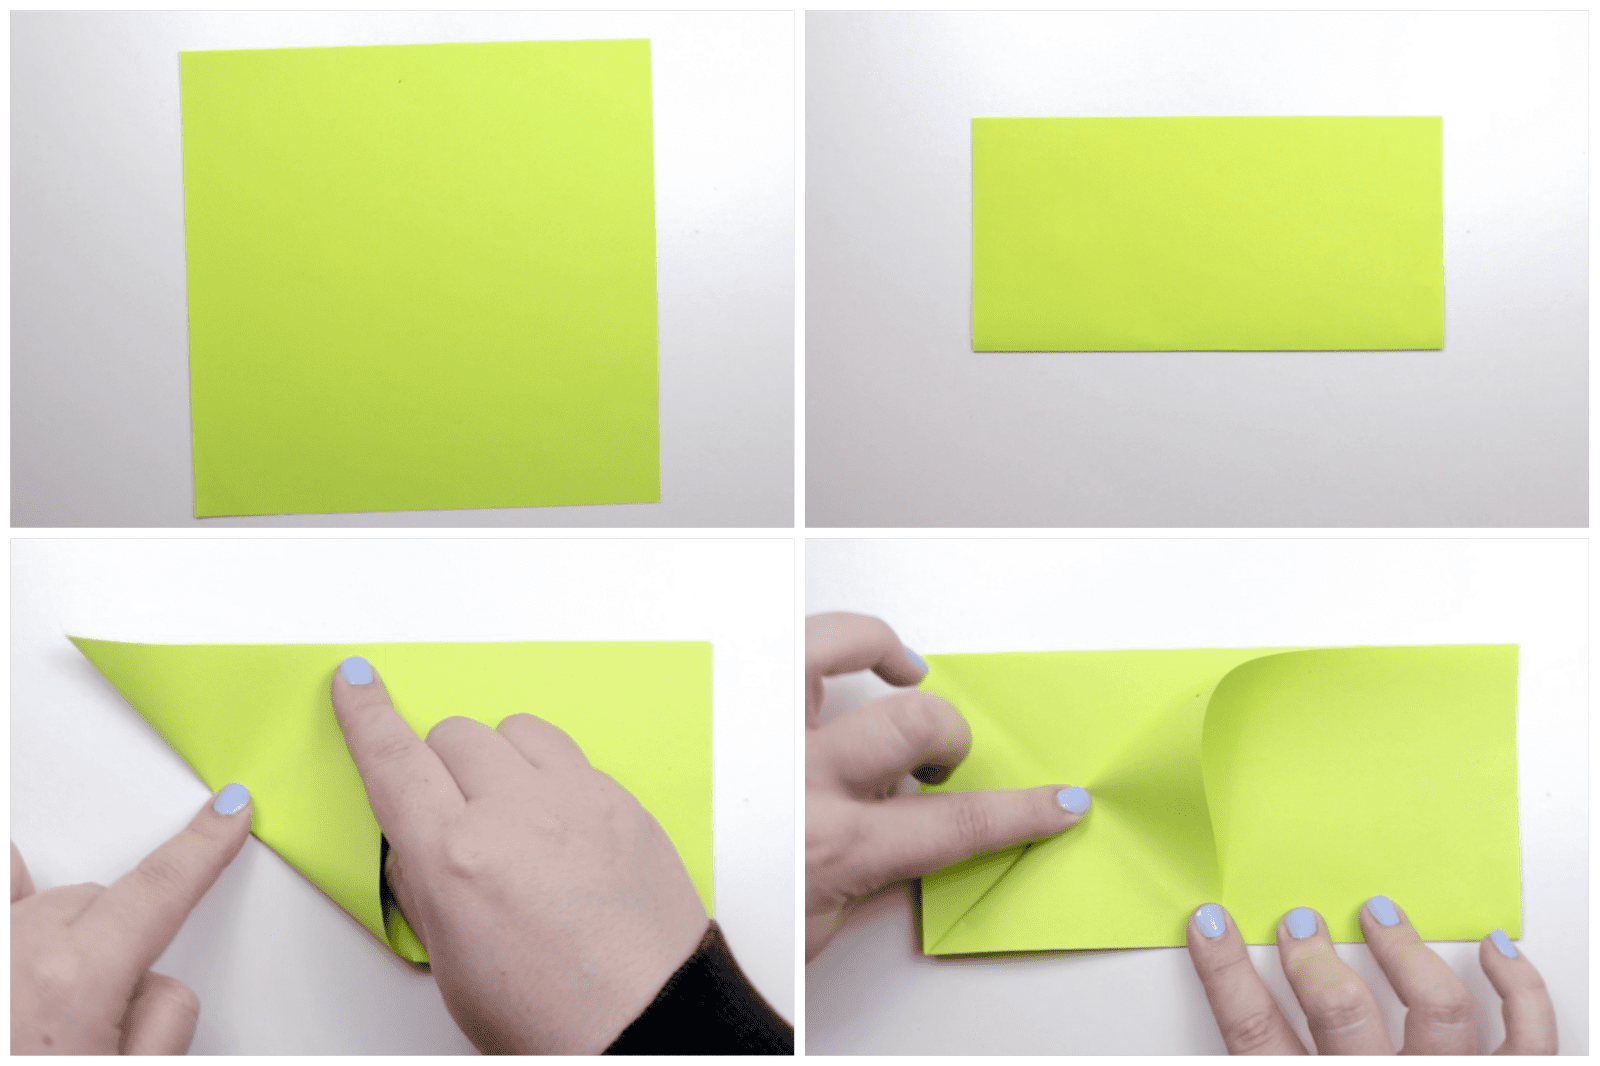 Sheet of yellow paper folded into a rectangle.